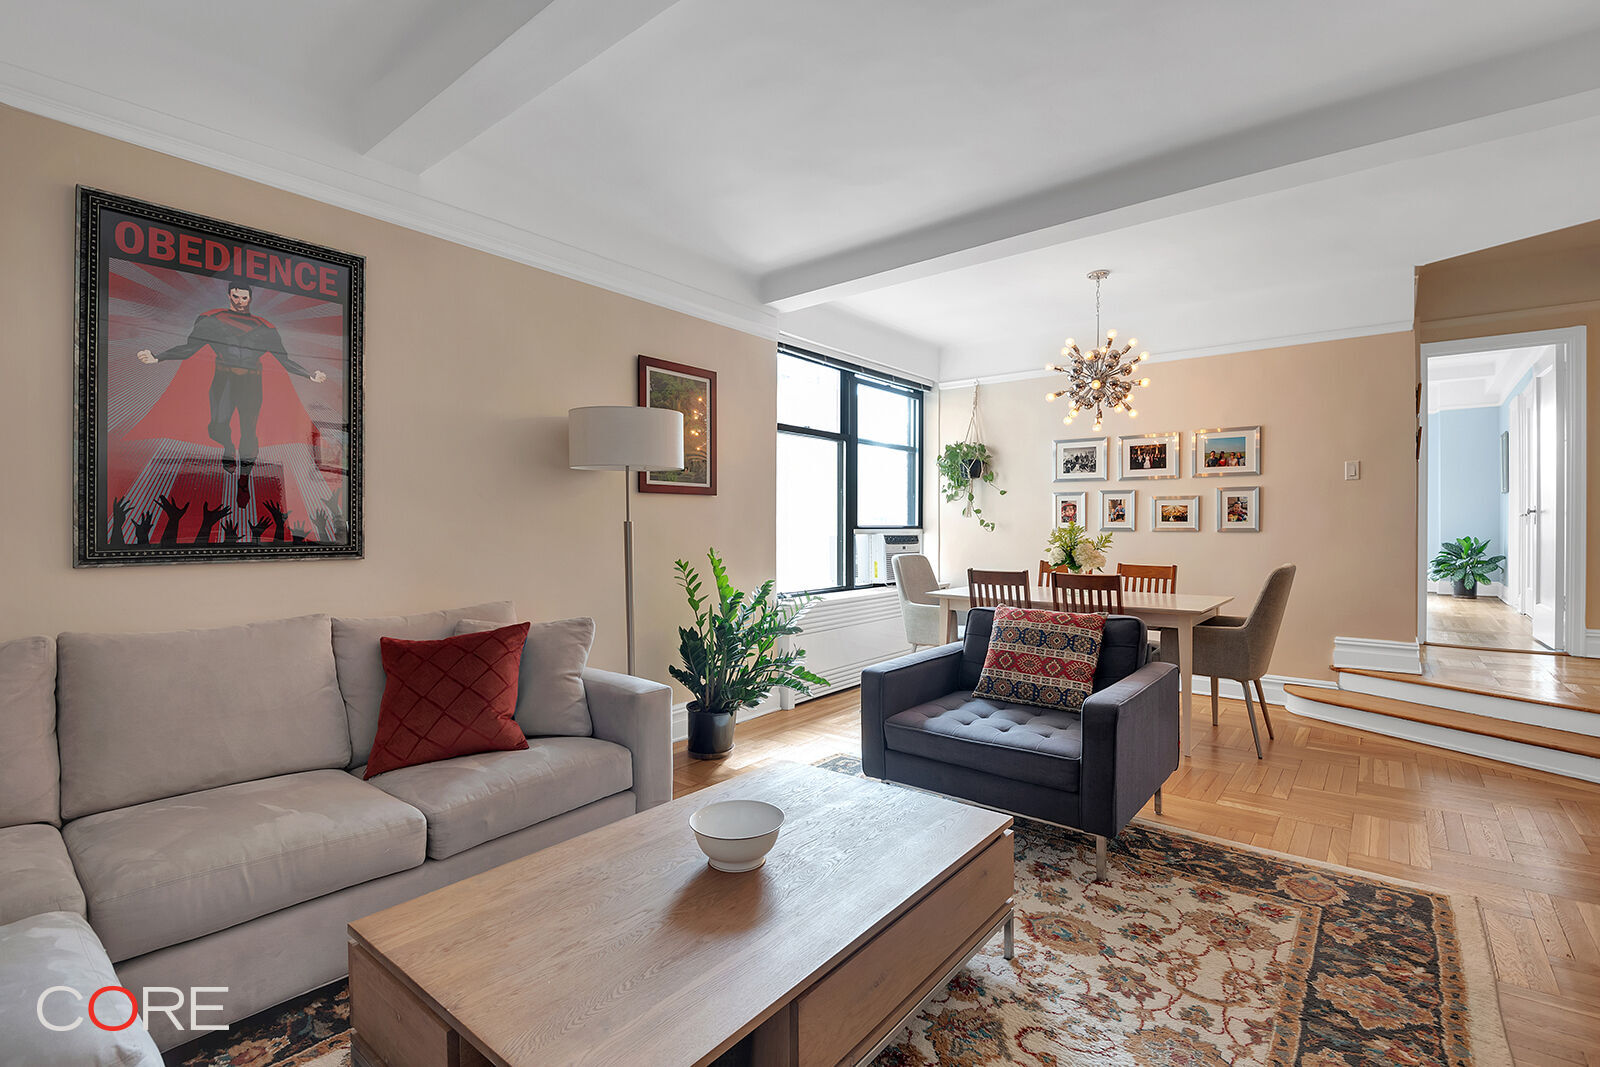 Apartment for sale at 200 West 86th Street, Apt 15K